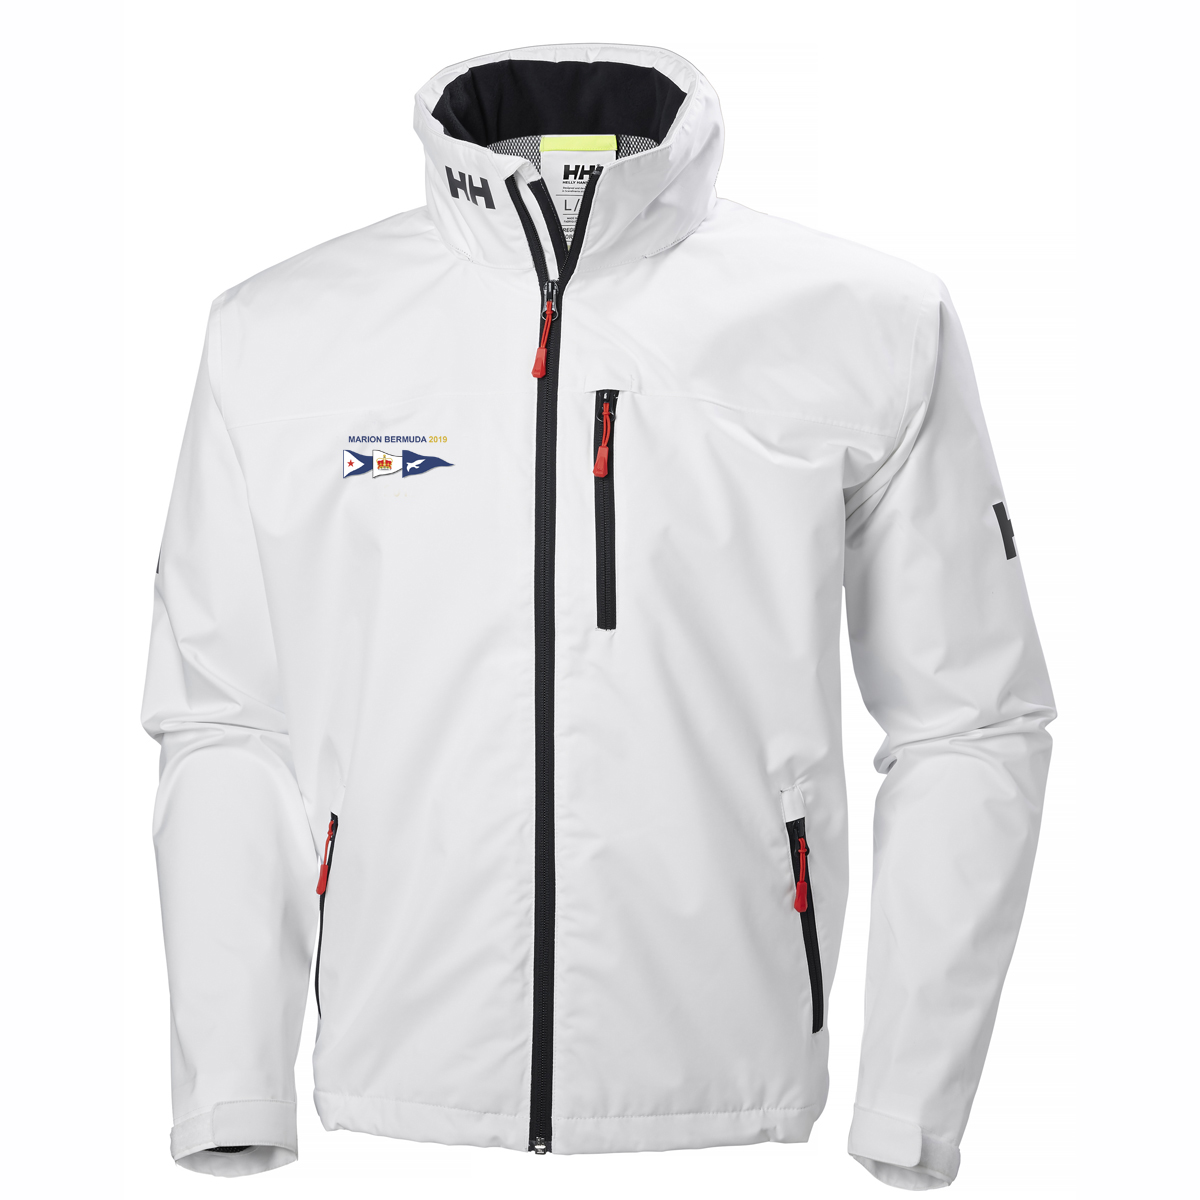 MBR 19 M'S CREW HOODED JACKET